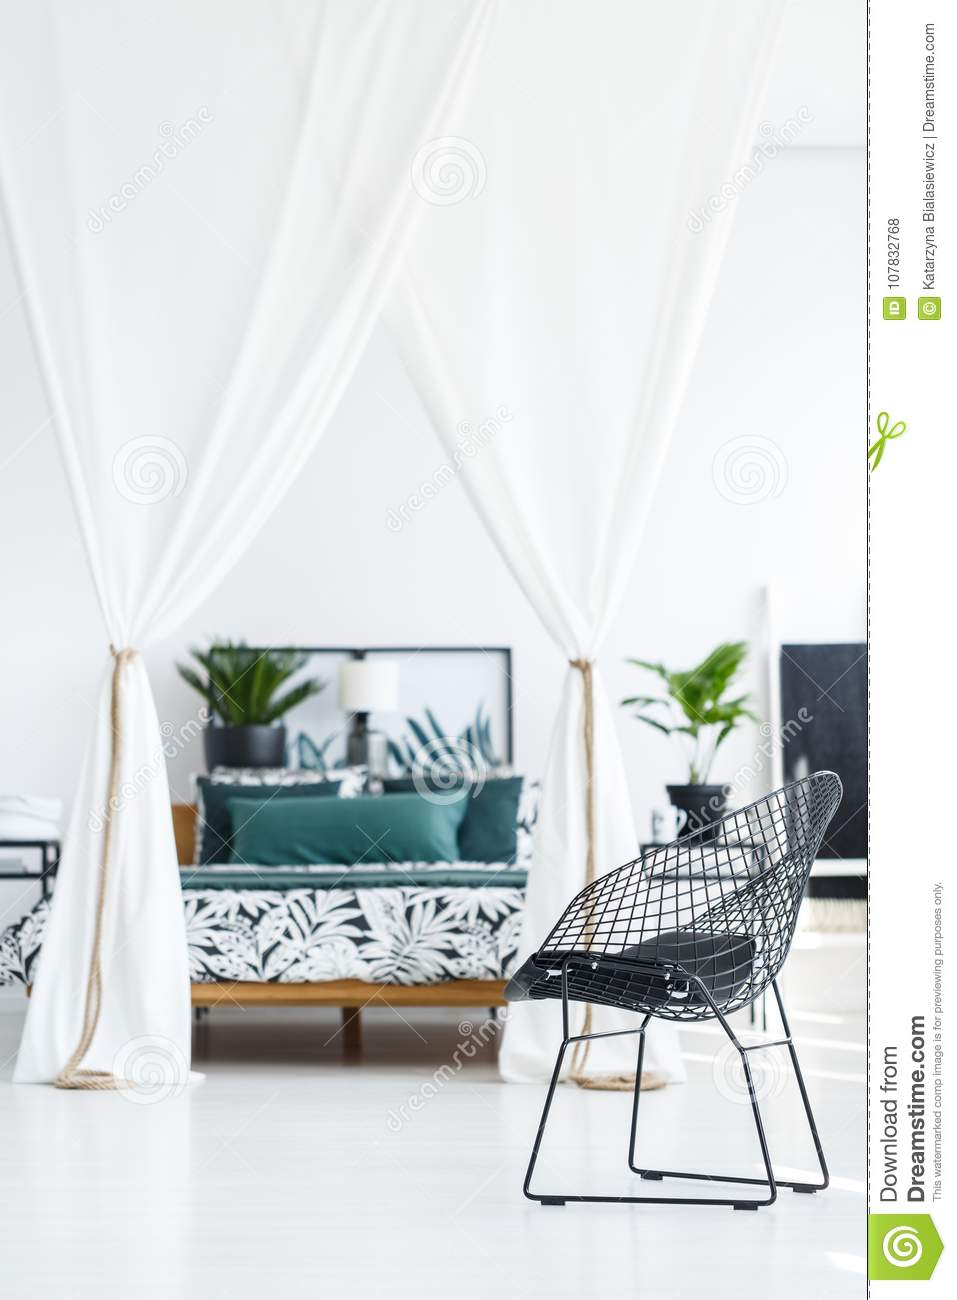 Metal Black Chair In Bedroom Stock Photo - Image of colonial ...